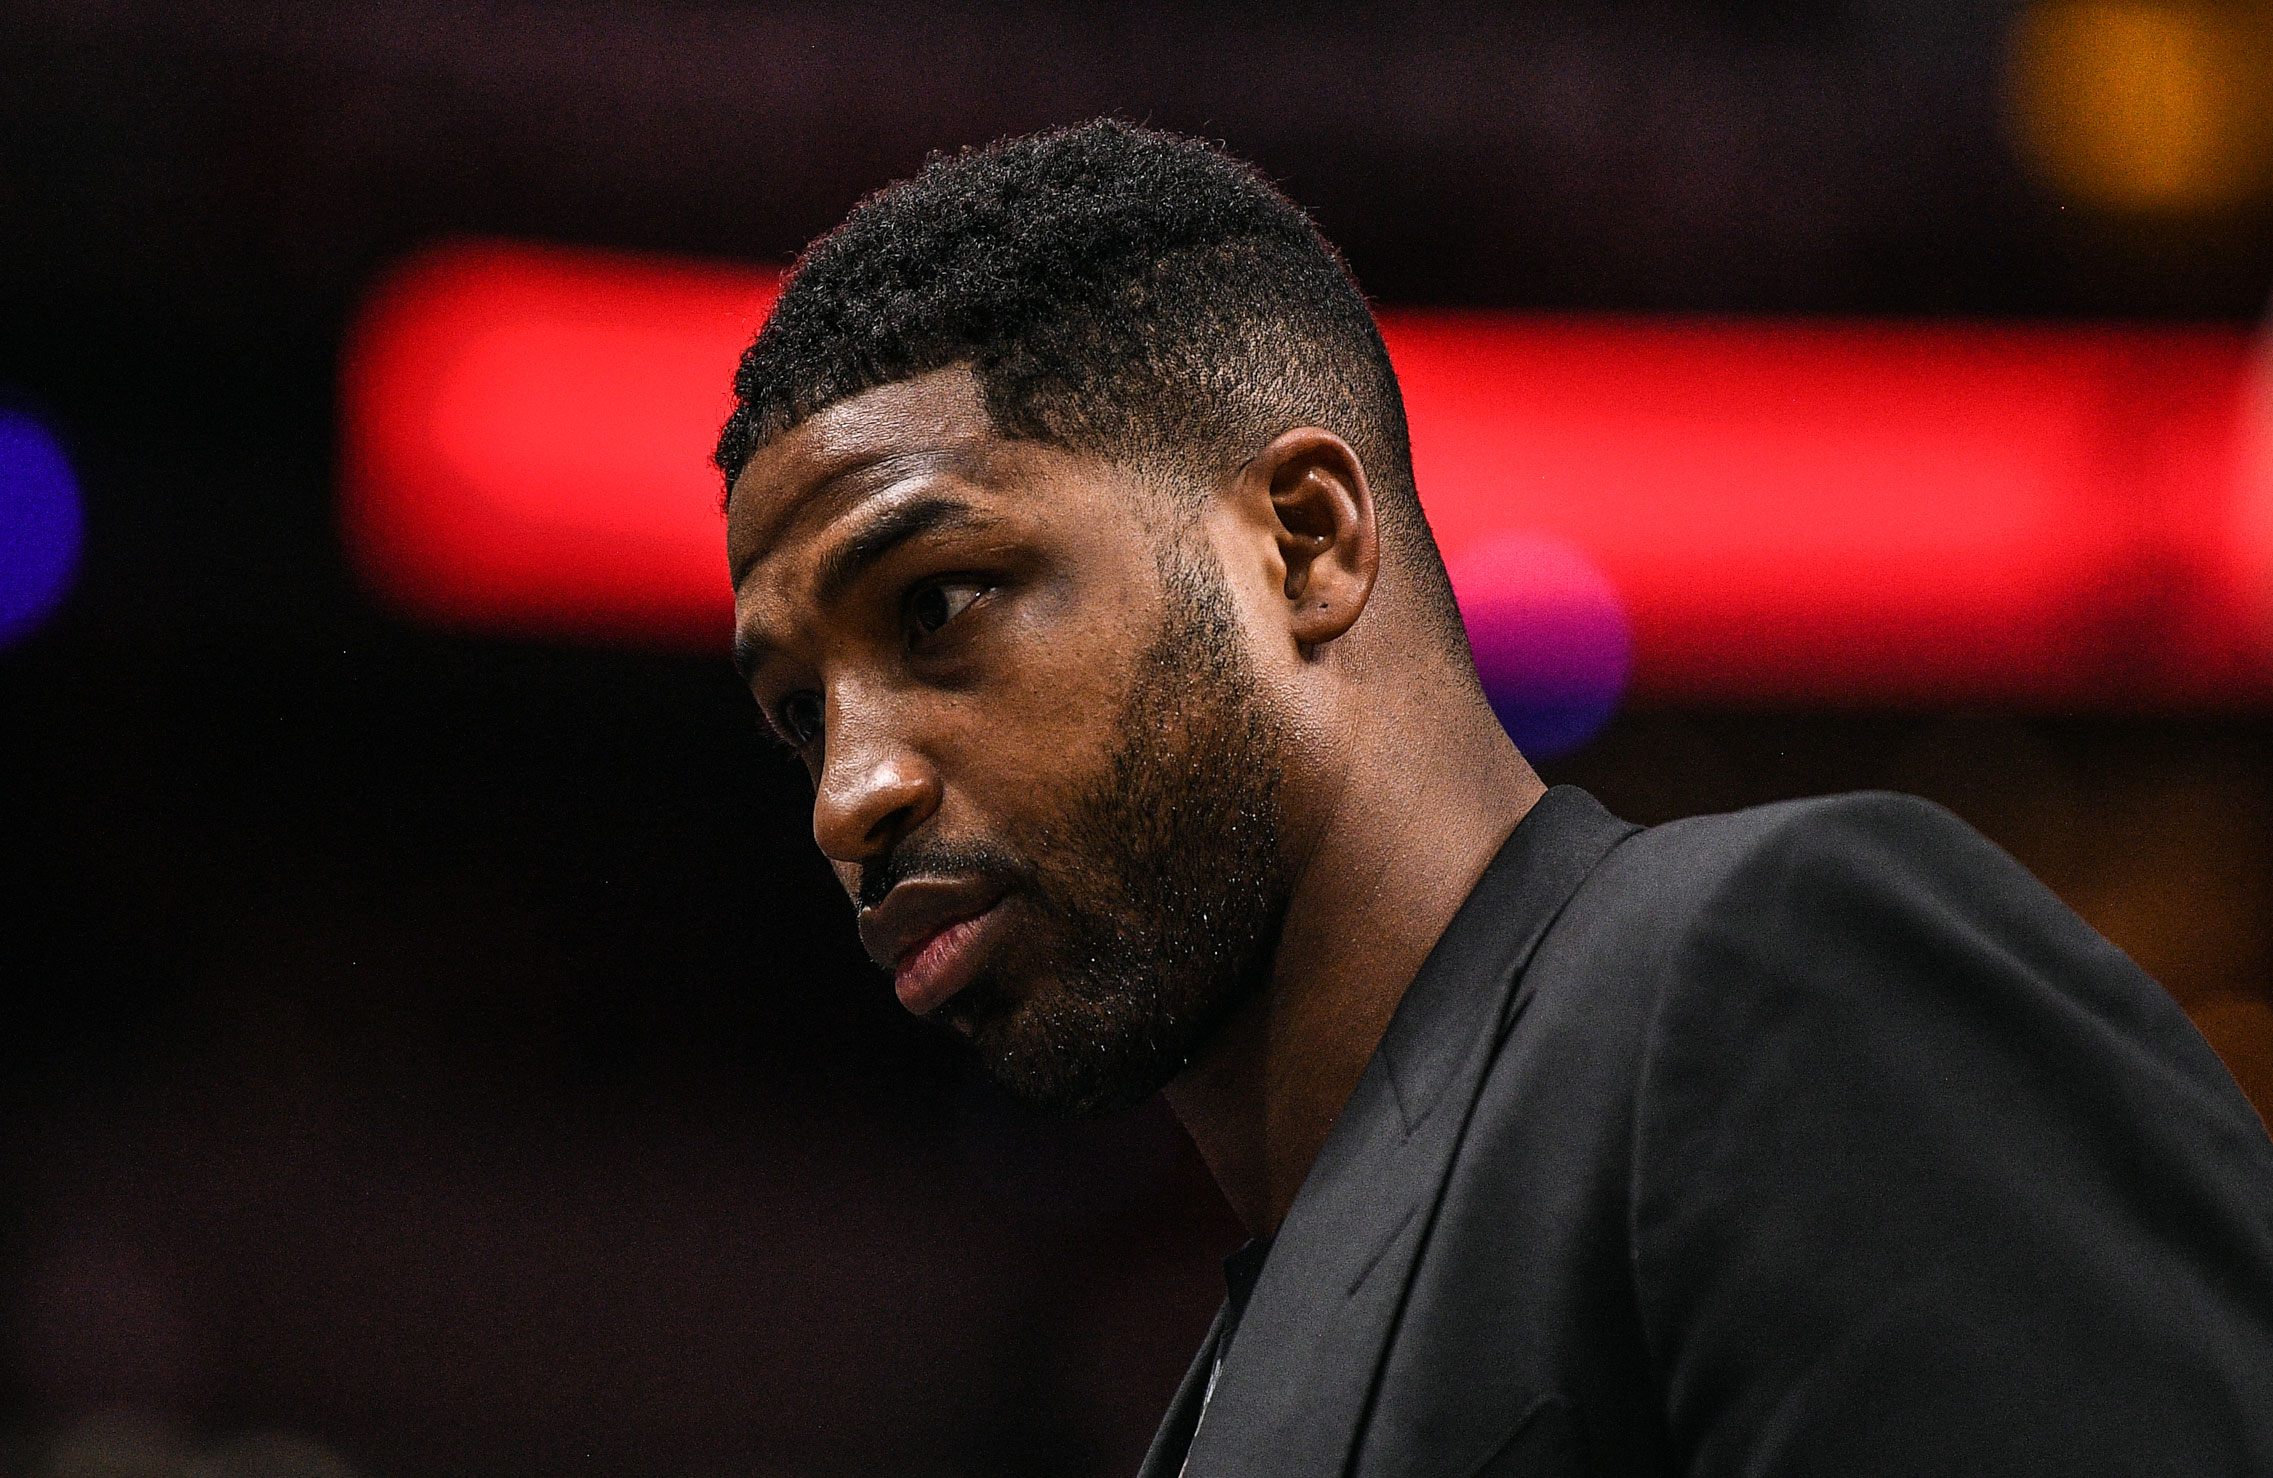 Tristan Thompson Listens to Song About Taking 'Secrets' to the 'Grave' - Tristan Thompson of the Cleveland Cavaliers on the bench during the in the first half against the Miami Heat at American Airlines Arena on March 8, 2019